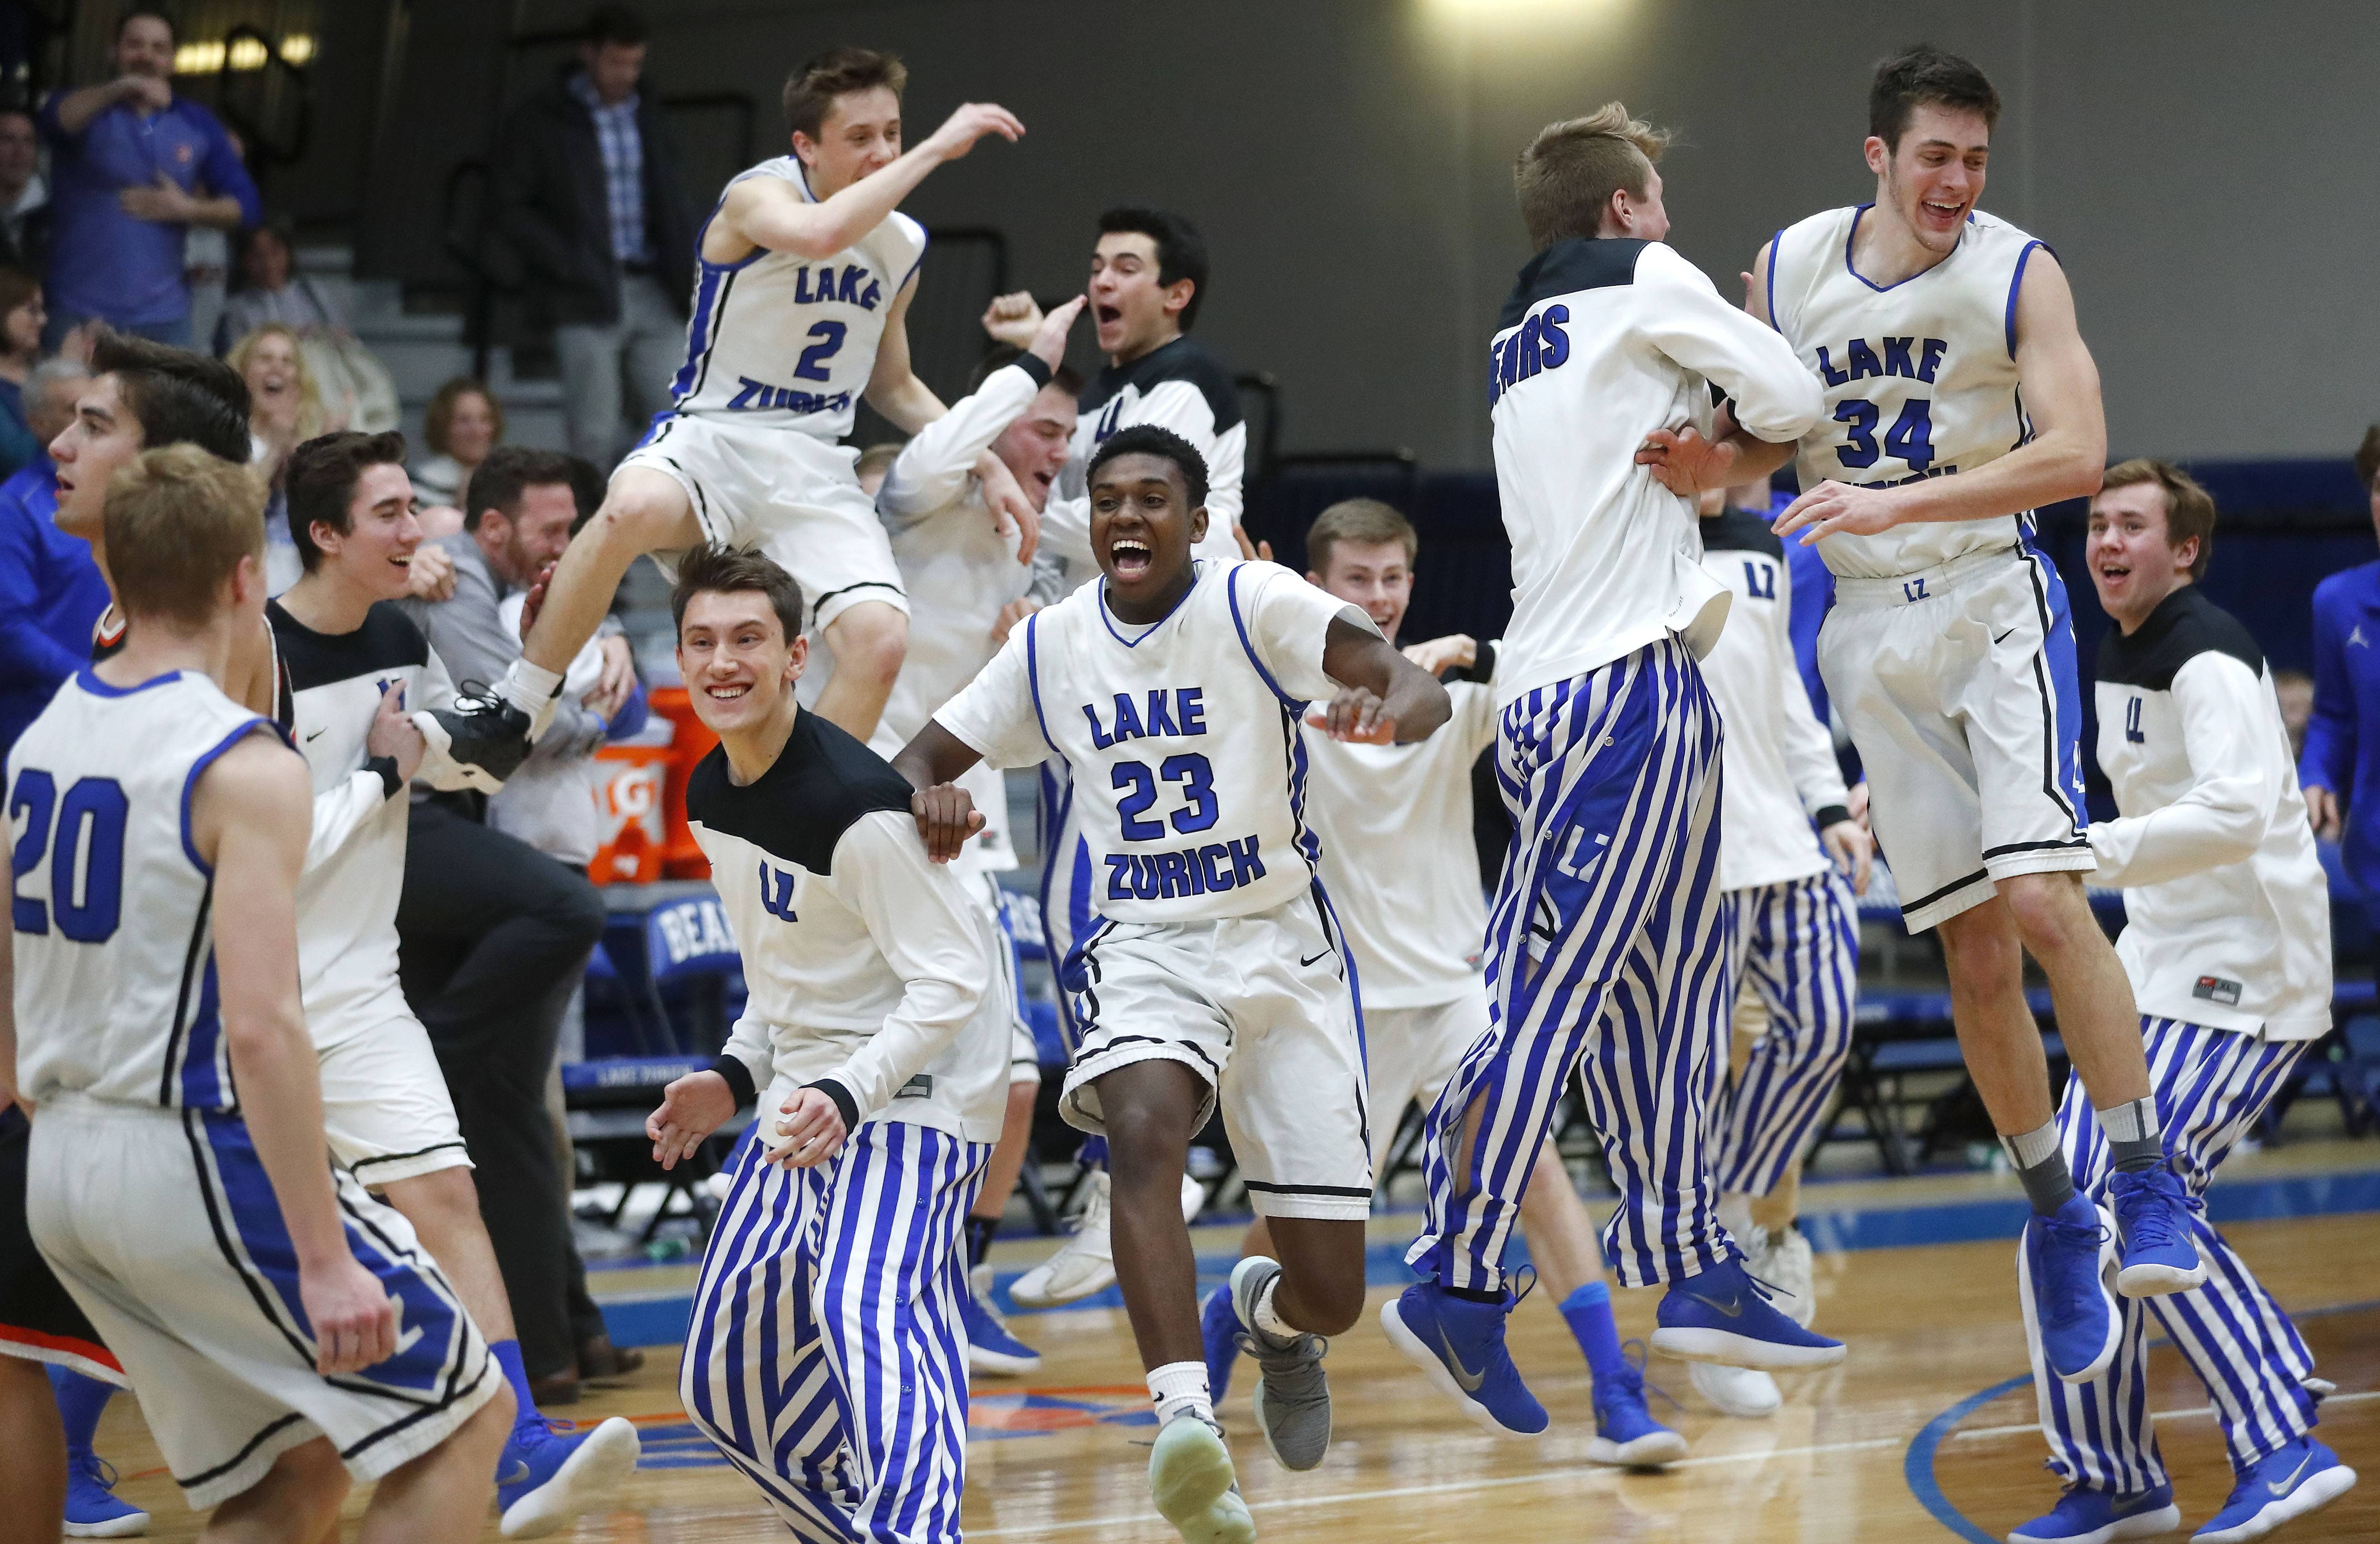 Images: Lake Zurich over Libertyville, 54-50 in boys Class 4A sectional semifinal basketball